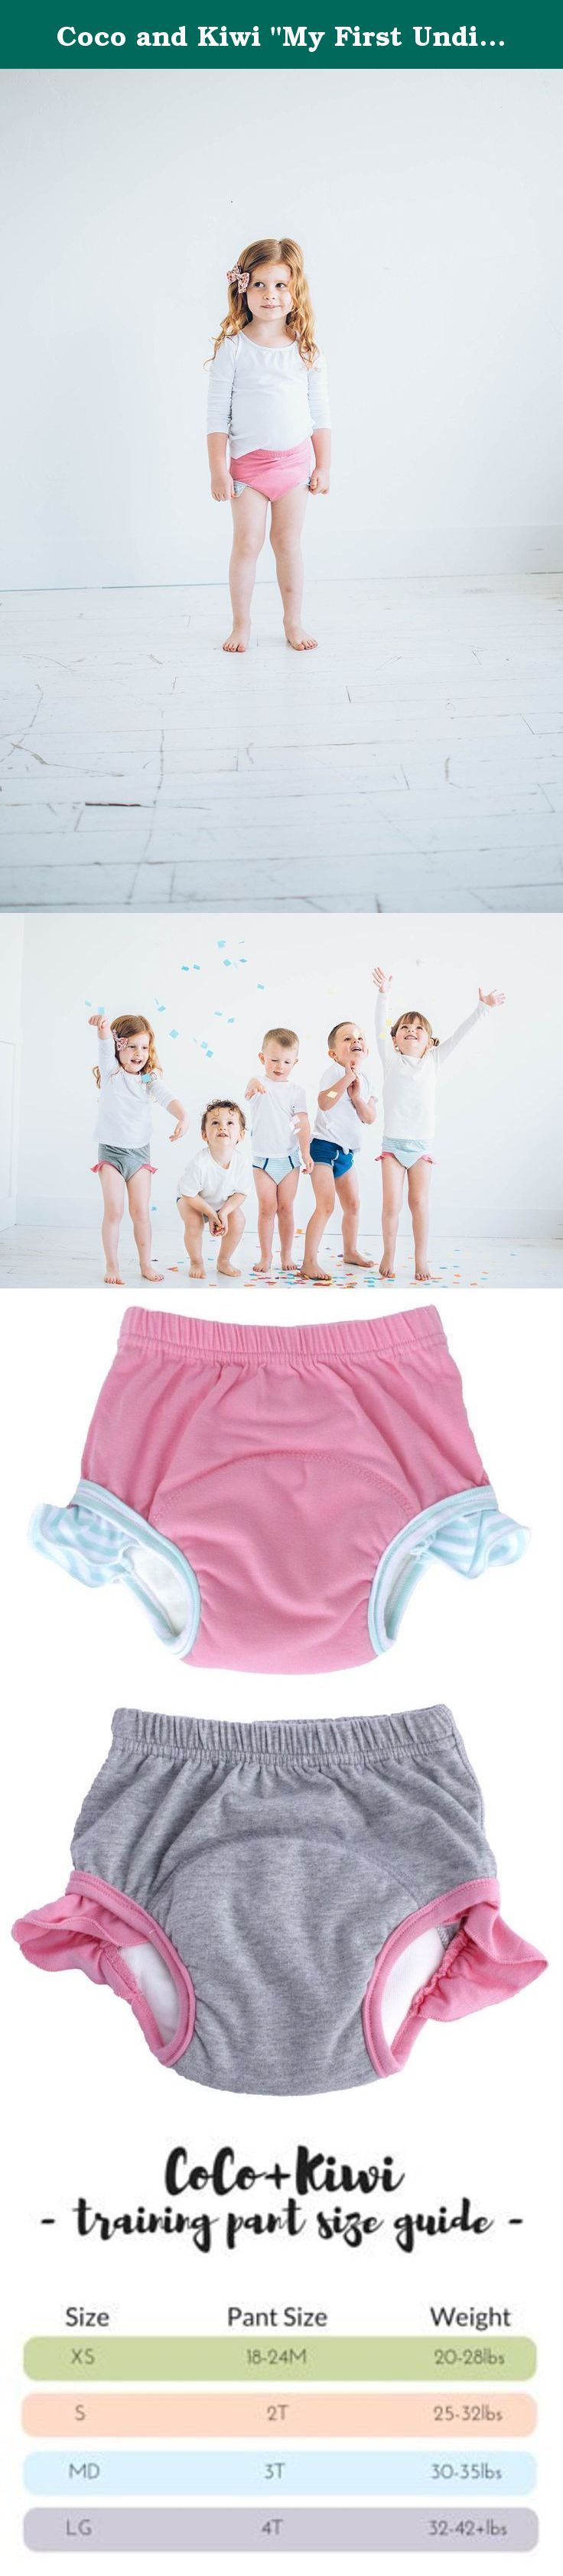 """Coco and Kiwi """"My First Undies"""" Girls' 4T - PINK+GREY - 2pk - Reusable Pull-on Baby and Toddler Underwear + Potty Training Pants. Switch to underwear without puddles with our """"My First Undies"""" collection. We utilize the absorbent power of bamboo + microfiber! Bring a bit of fun back into potty training while bringing a bit of sanity to mothers everywhere. Our Absorbent Toddler Underwear are meant for potty training and beyond. Comfy and fun designs are perfect for toddler through..."""